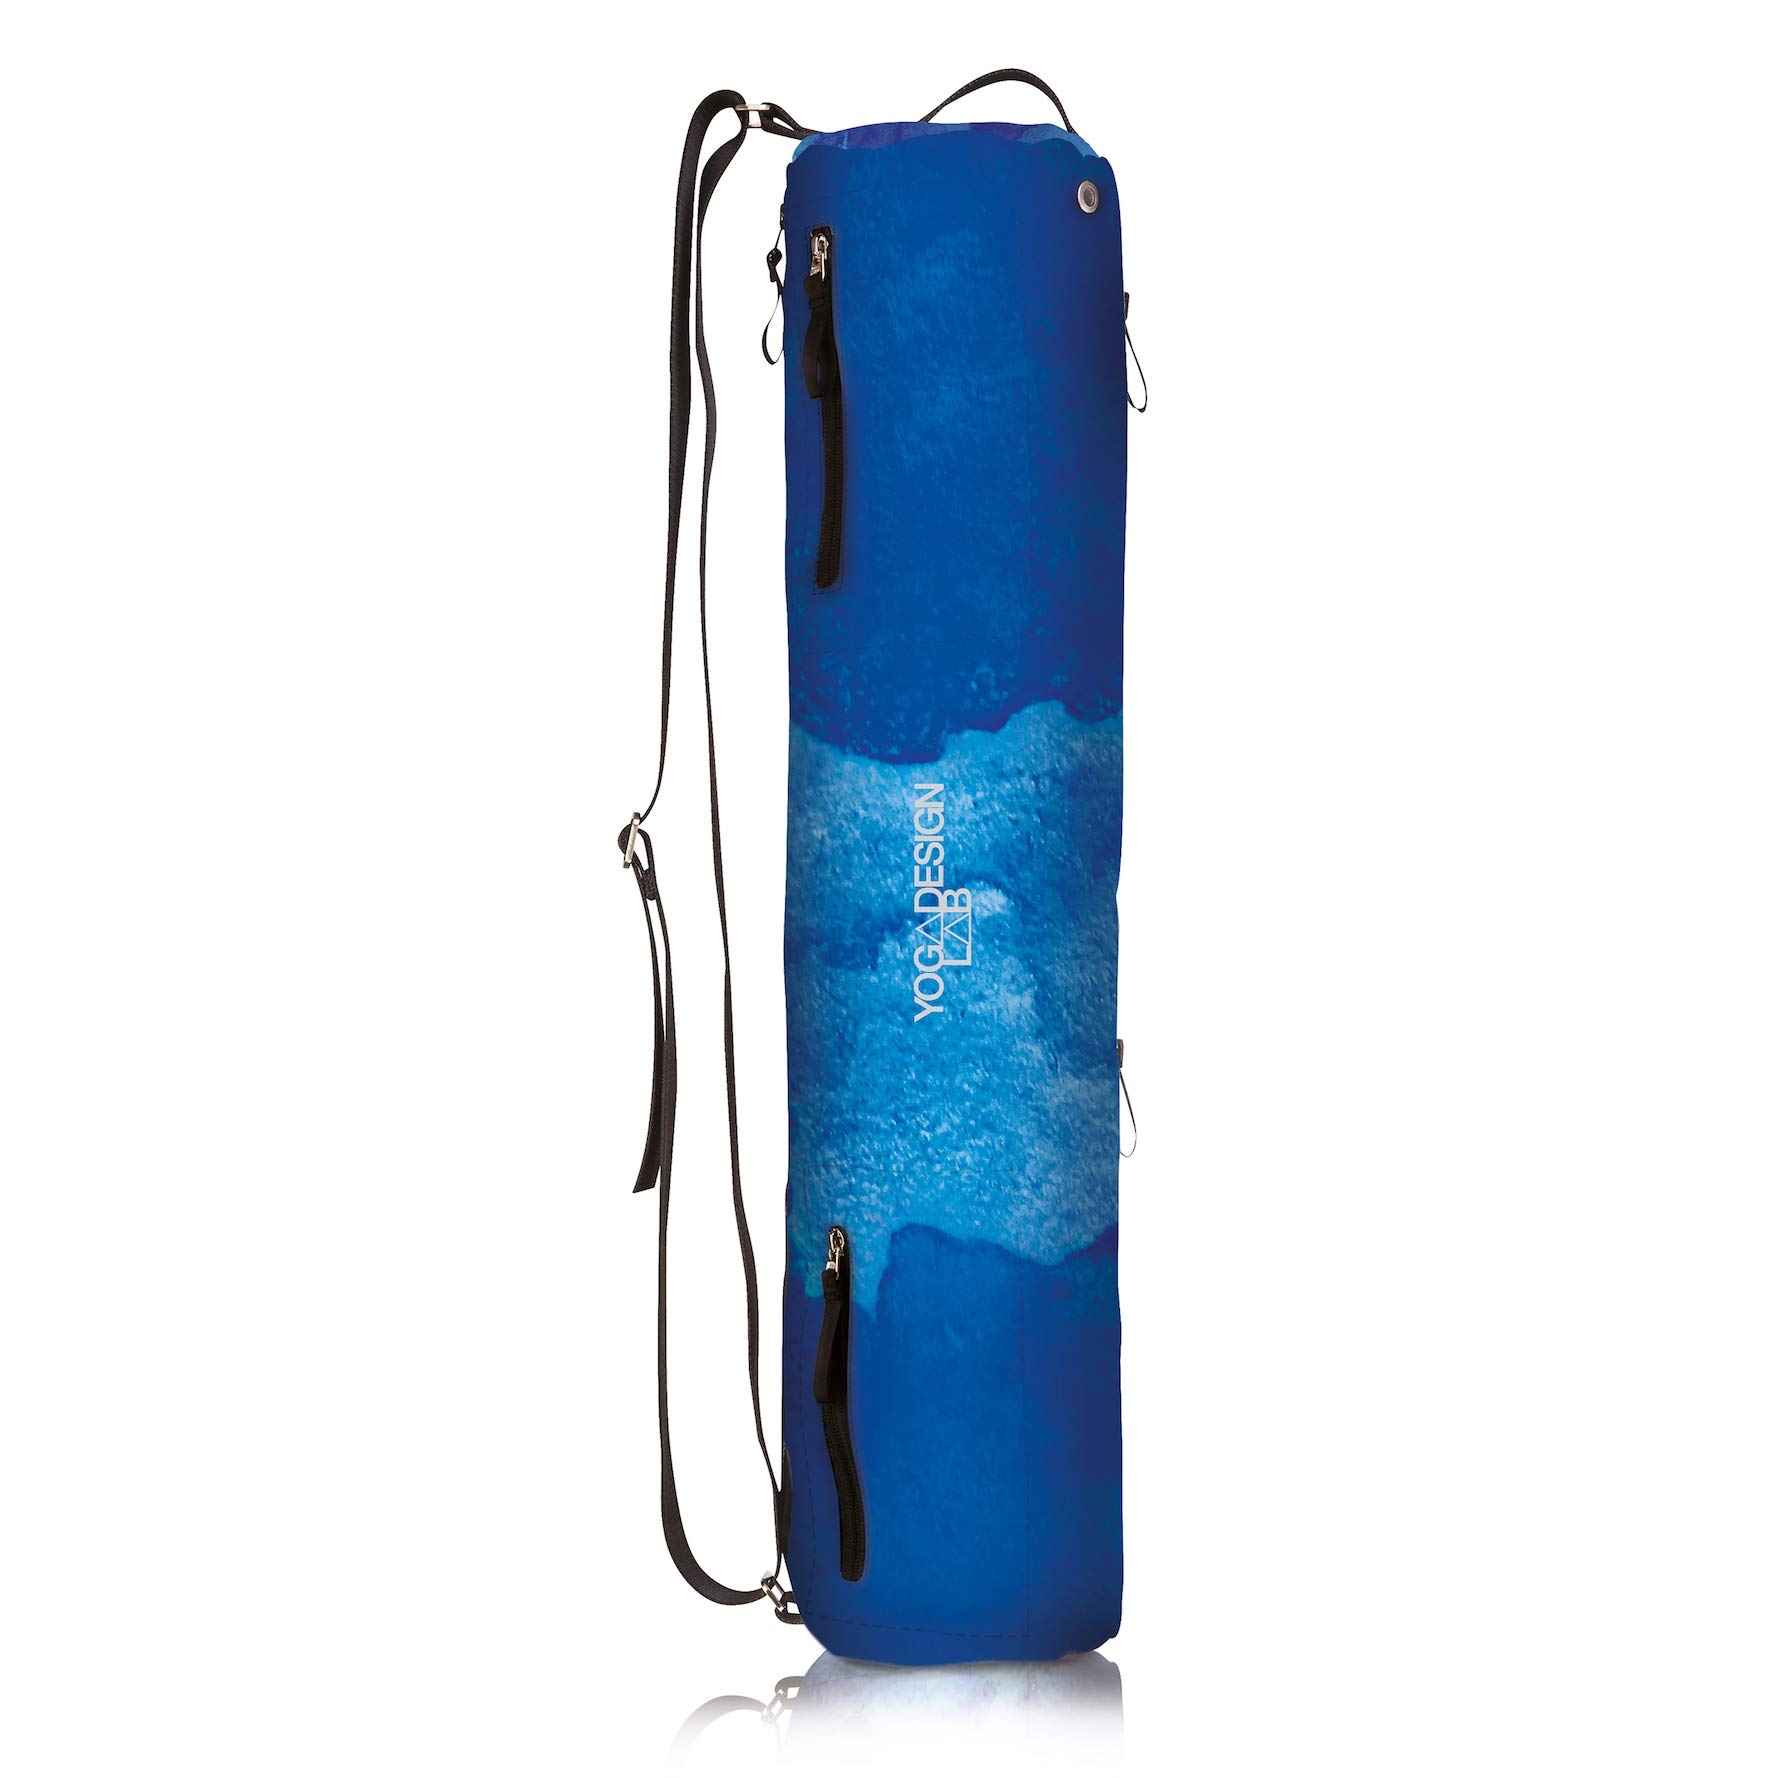 YOGA DESIGN LAB The Yoga MAT Bag Premium, All-in-One, Lightweight, Multi Pockets, Extra Durable | Designed in Bali | The Travel Yoga Bag That Fits Your Mat & Your Life! (Uluwatu)